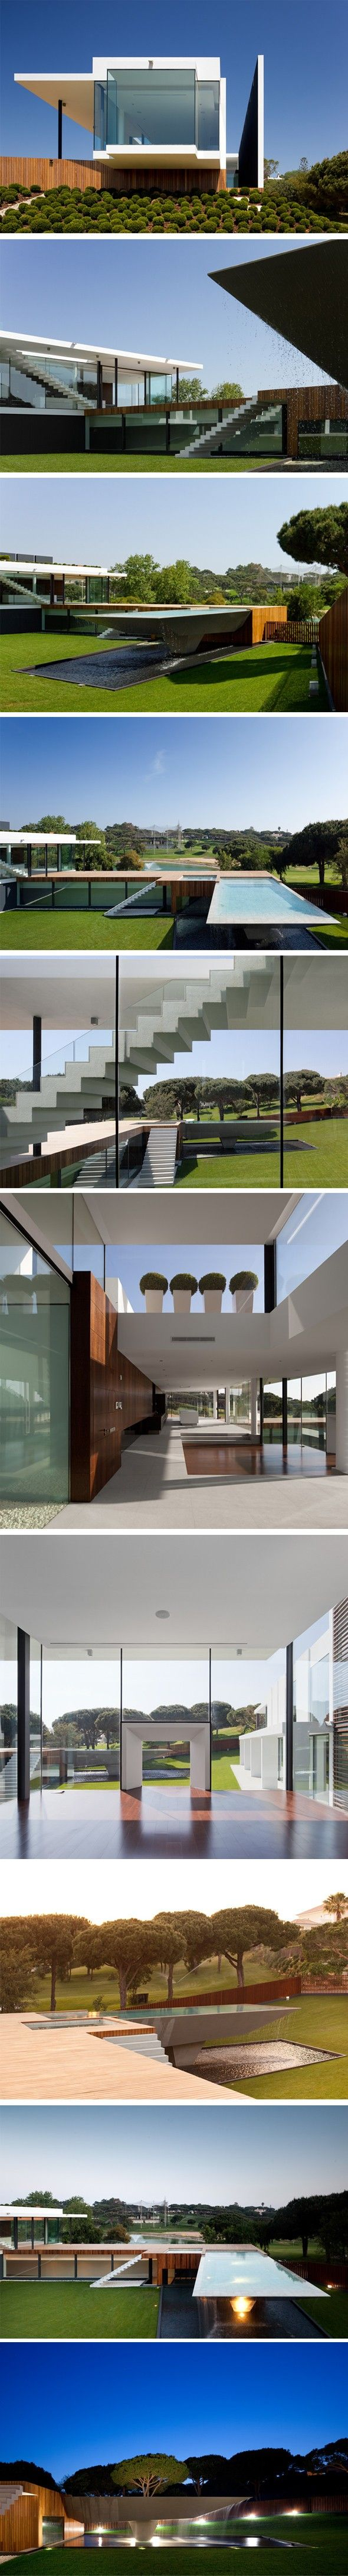 Casa Vale Do Lobo par Arqui+Arquitectura - Journal du Design